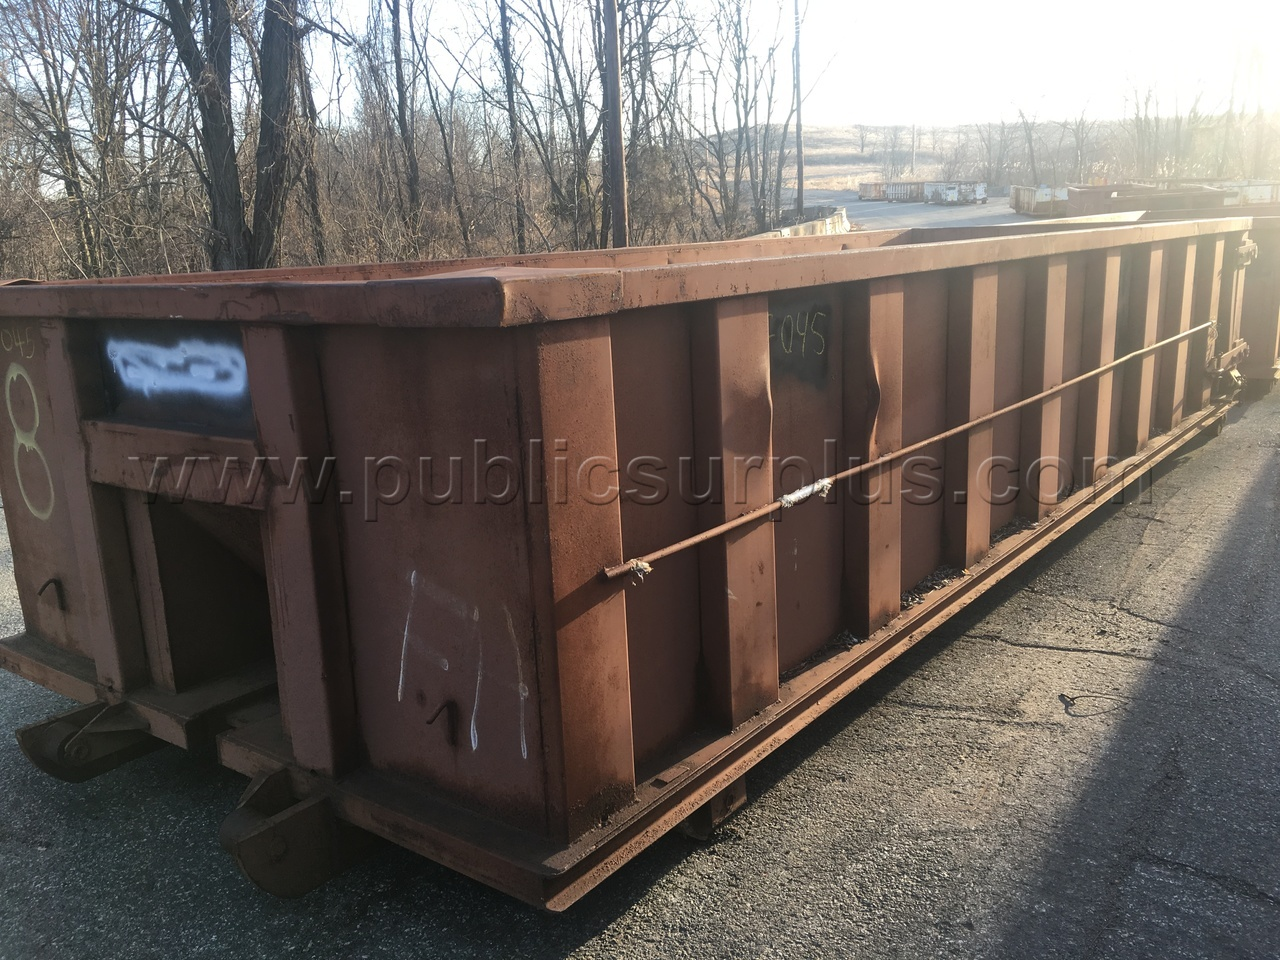 #2268837 - Containers, Roll-off, 20 yard, QTY: 20